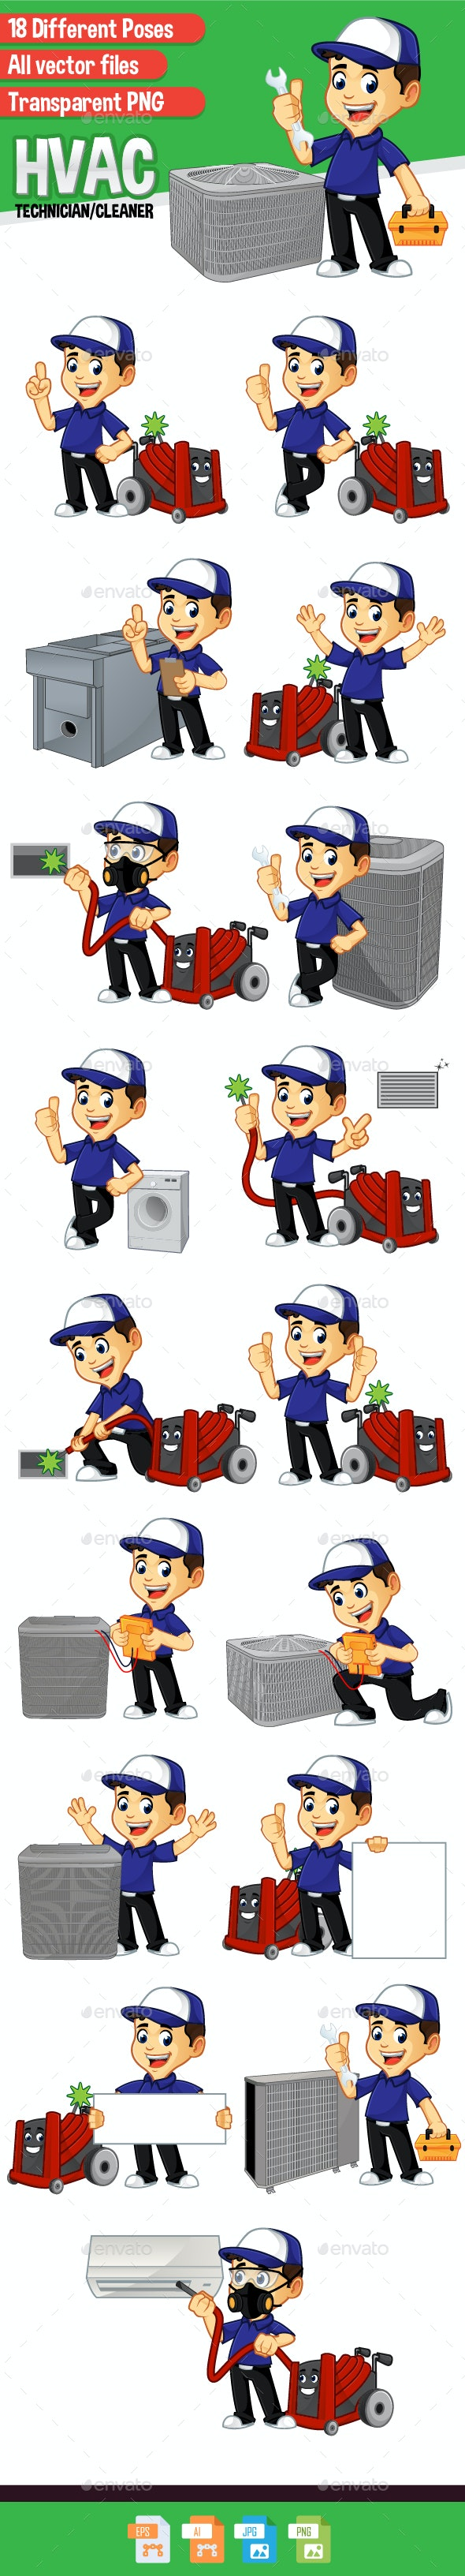 HVAC Cleaner or Technician - People Characters